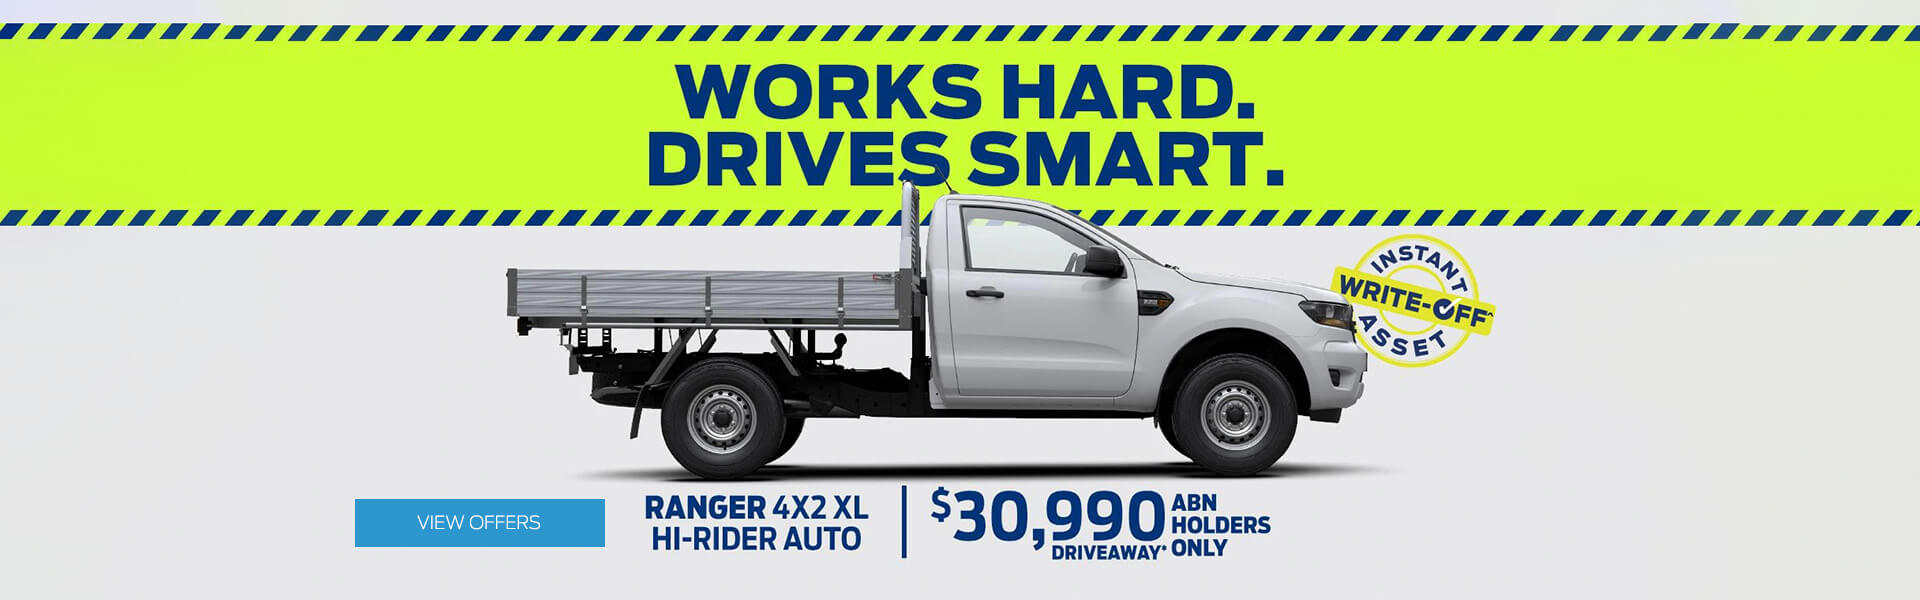 Works Hard. Drives Smart. Ranger 4x2 XL Hi-Rider Auto